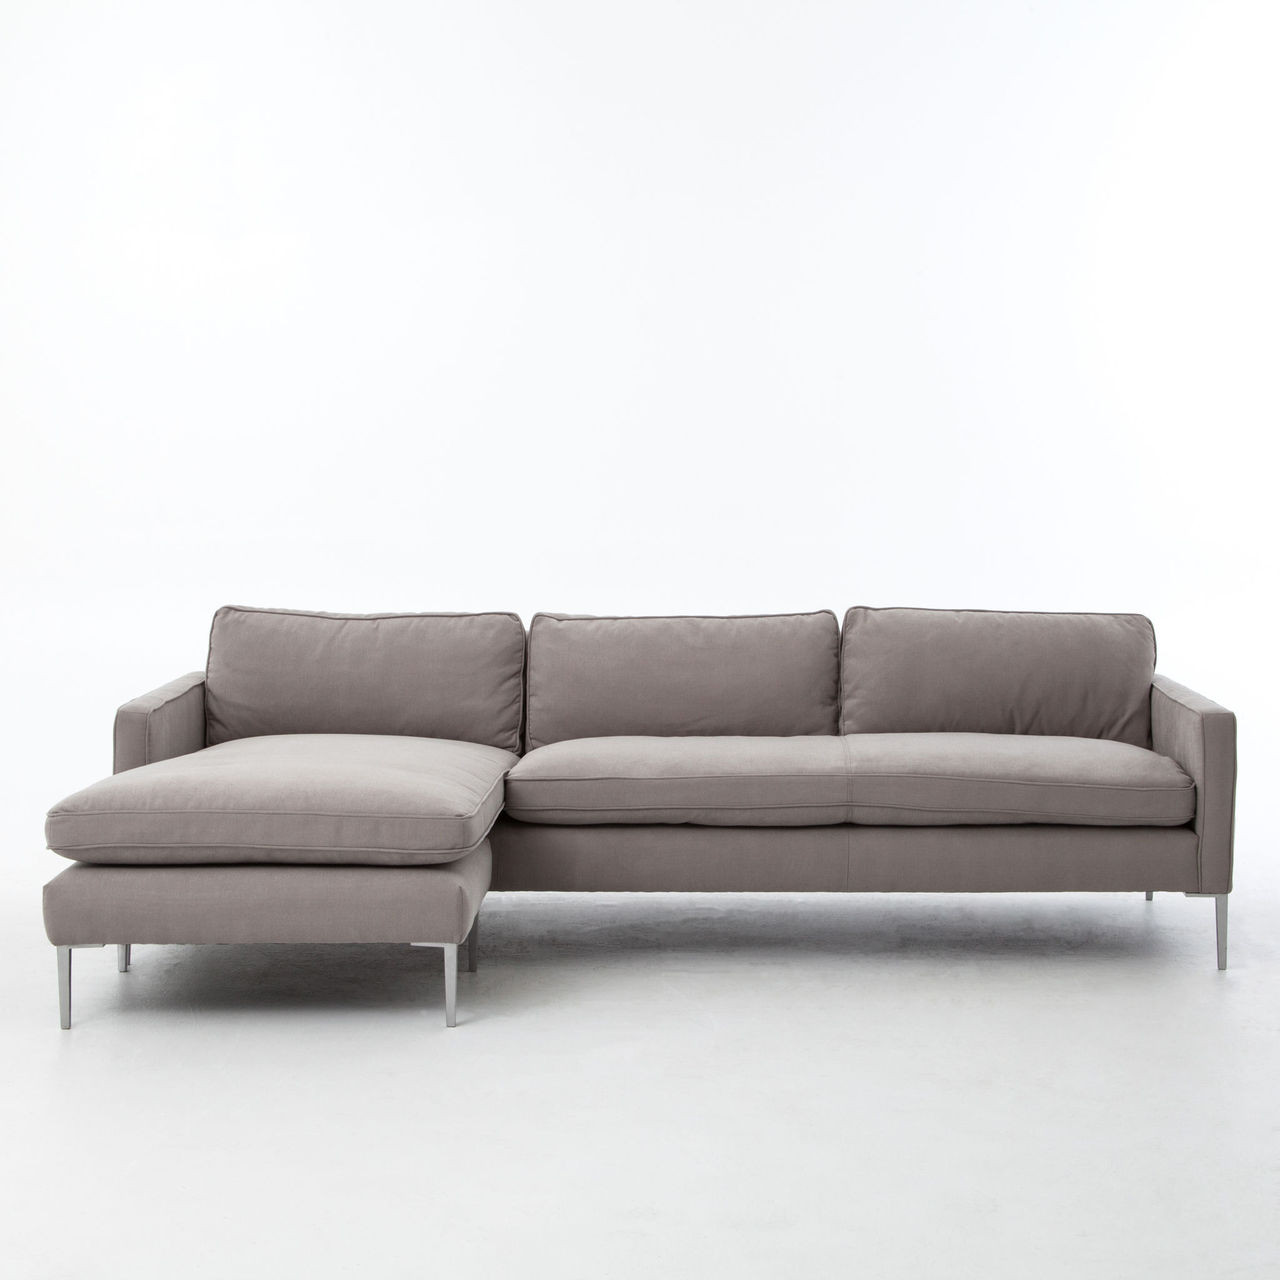 15 Fresh Sofa With Chaise For Small Spaces Fresh Home Design Ideas Sherbrooke Upholstered Flip Sectional Sofa Zin Home